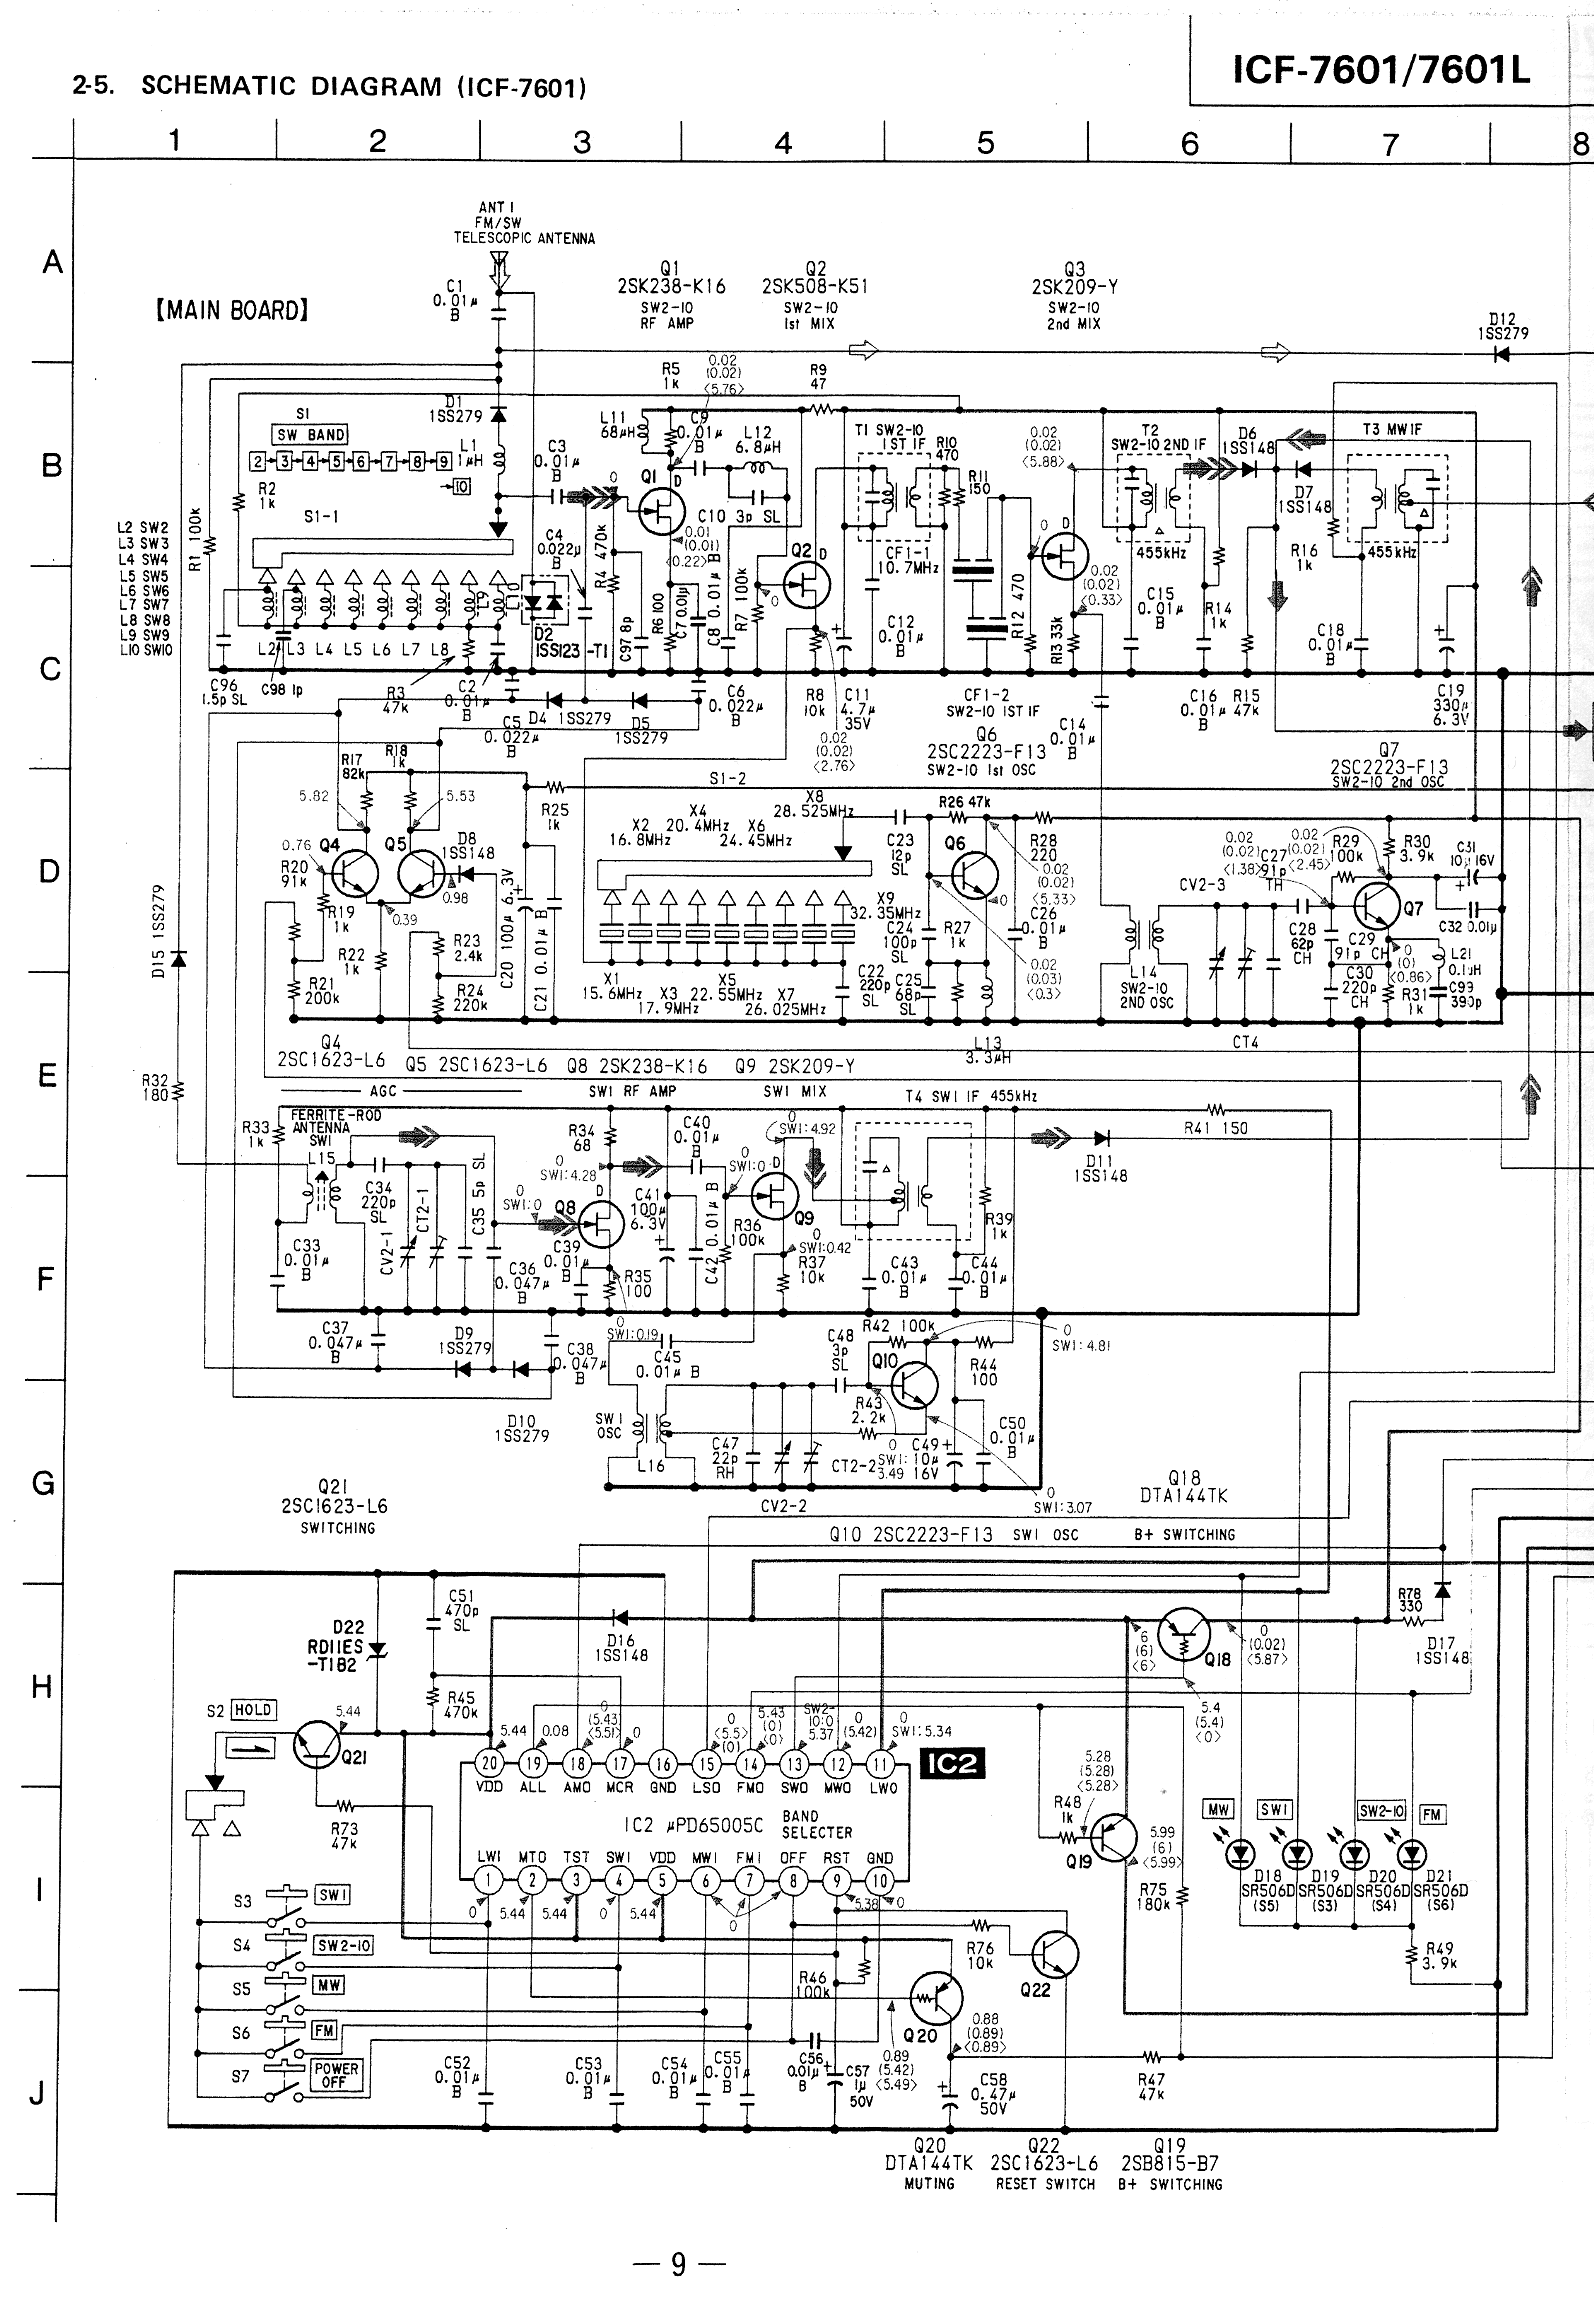 icf 7601 schematic l the sony 7600 series page icf 7601, icf 7600da 7700 smart fortwo 450 wiring diagram pdf at readyjetset.co